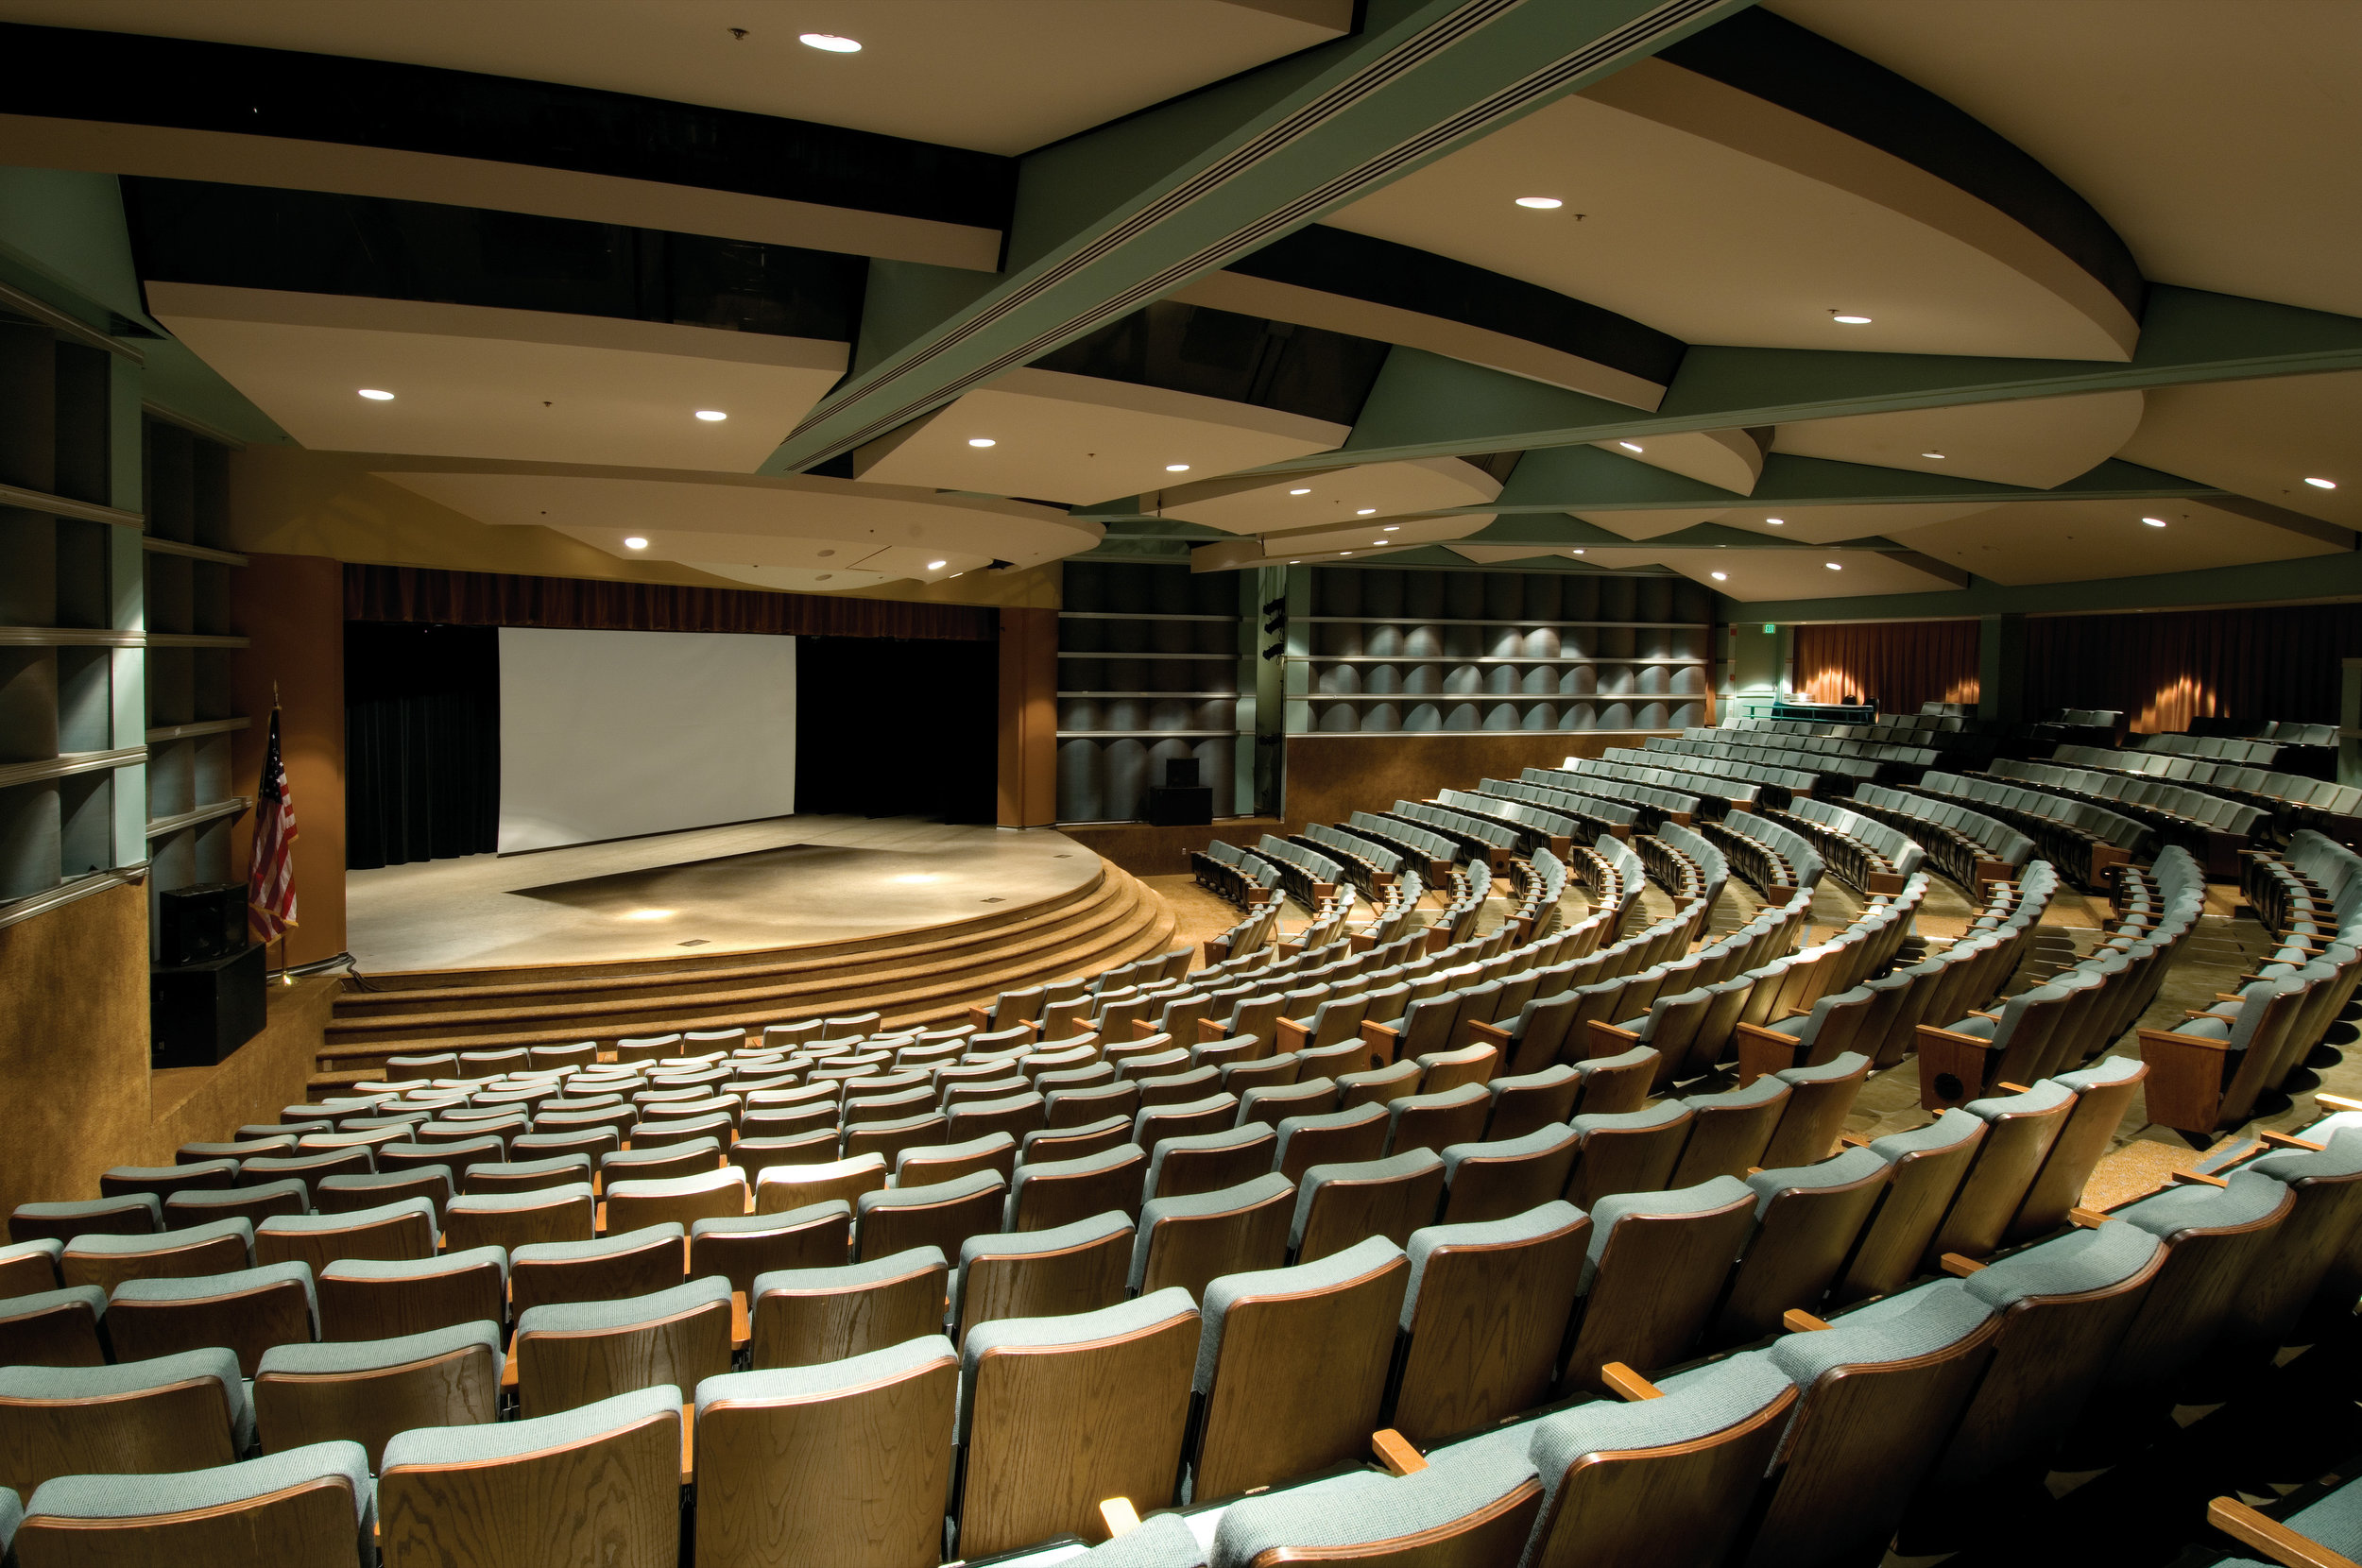 Copy of Theater showing 600 empty seats and stage